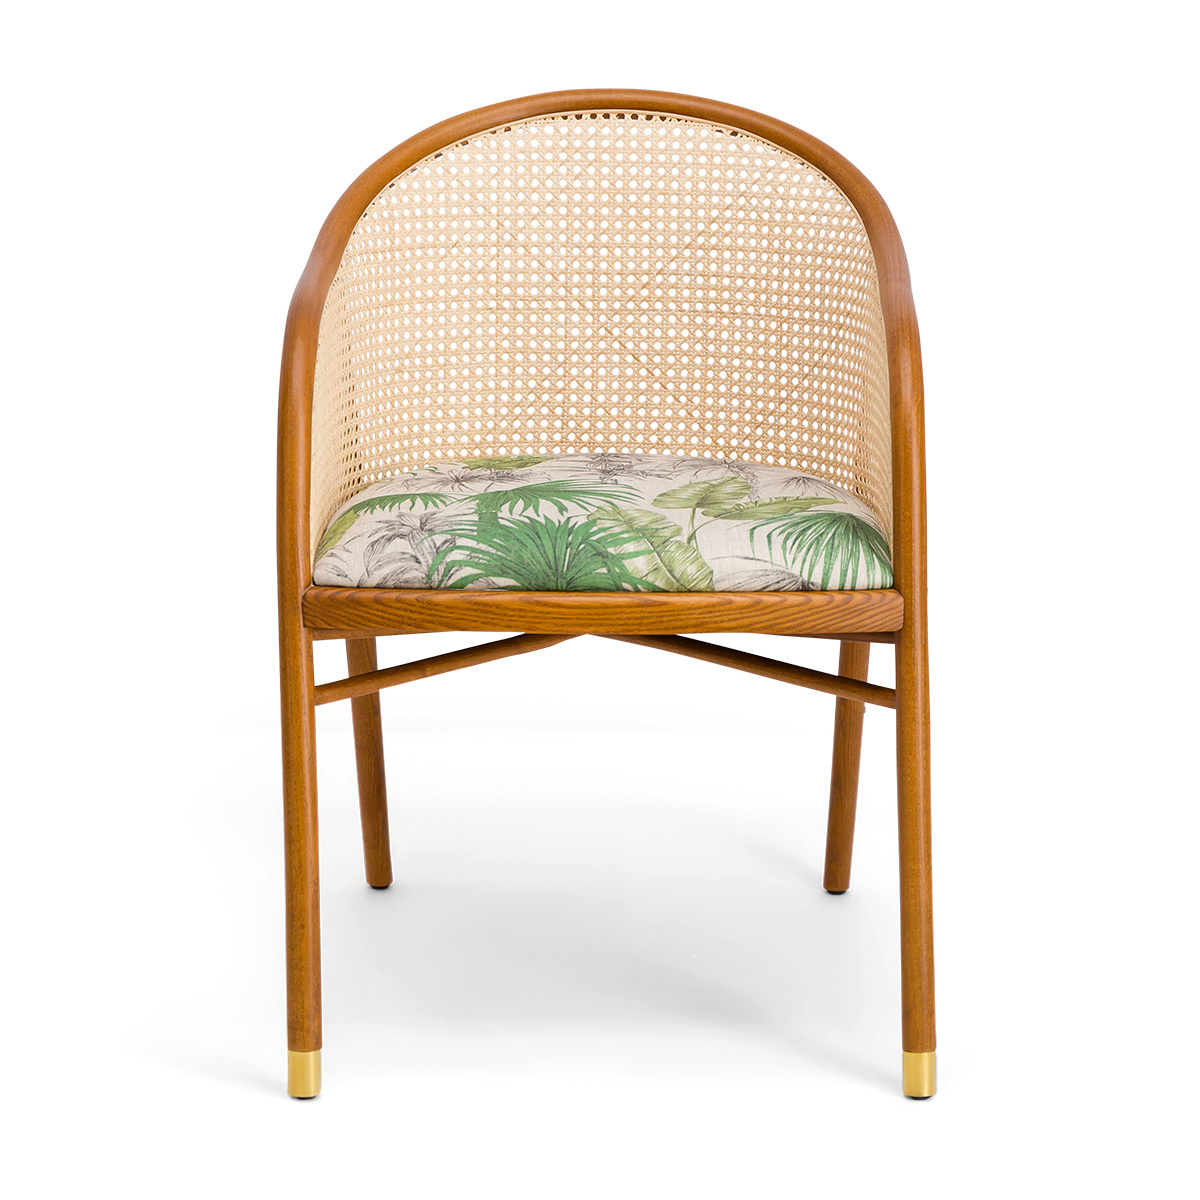 Cavallo Armchair, Banana Tree Print with Cherrywood Frame